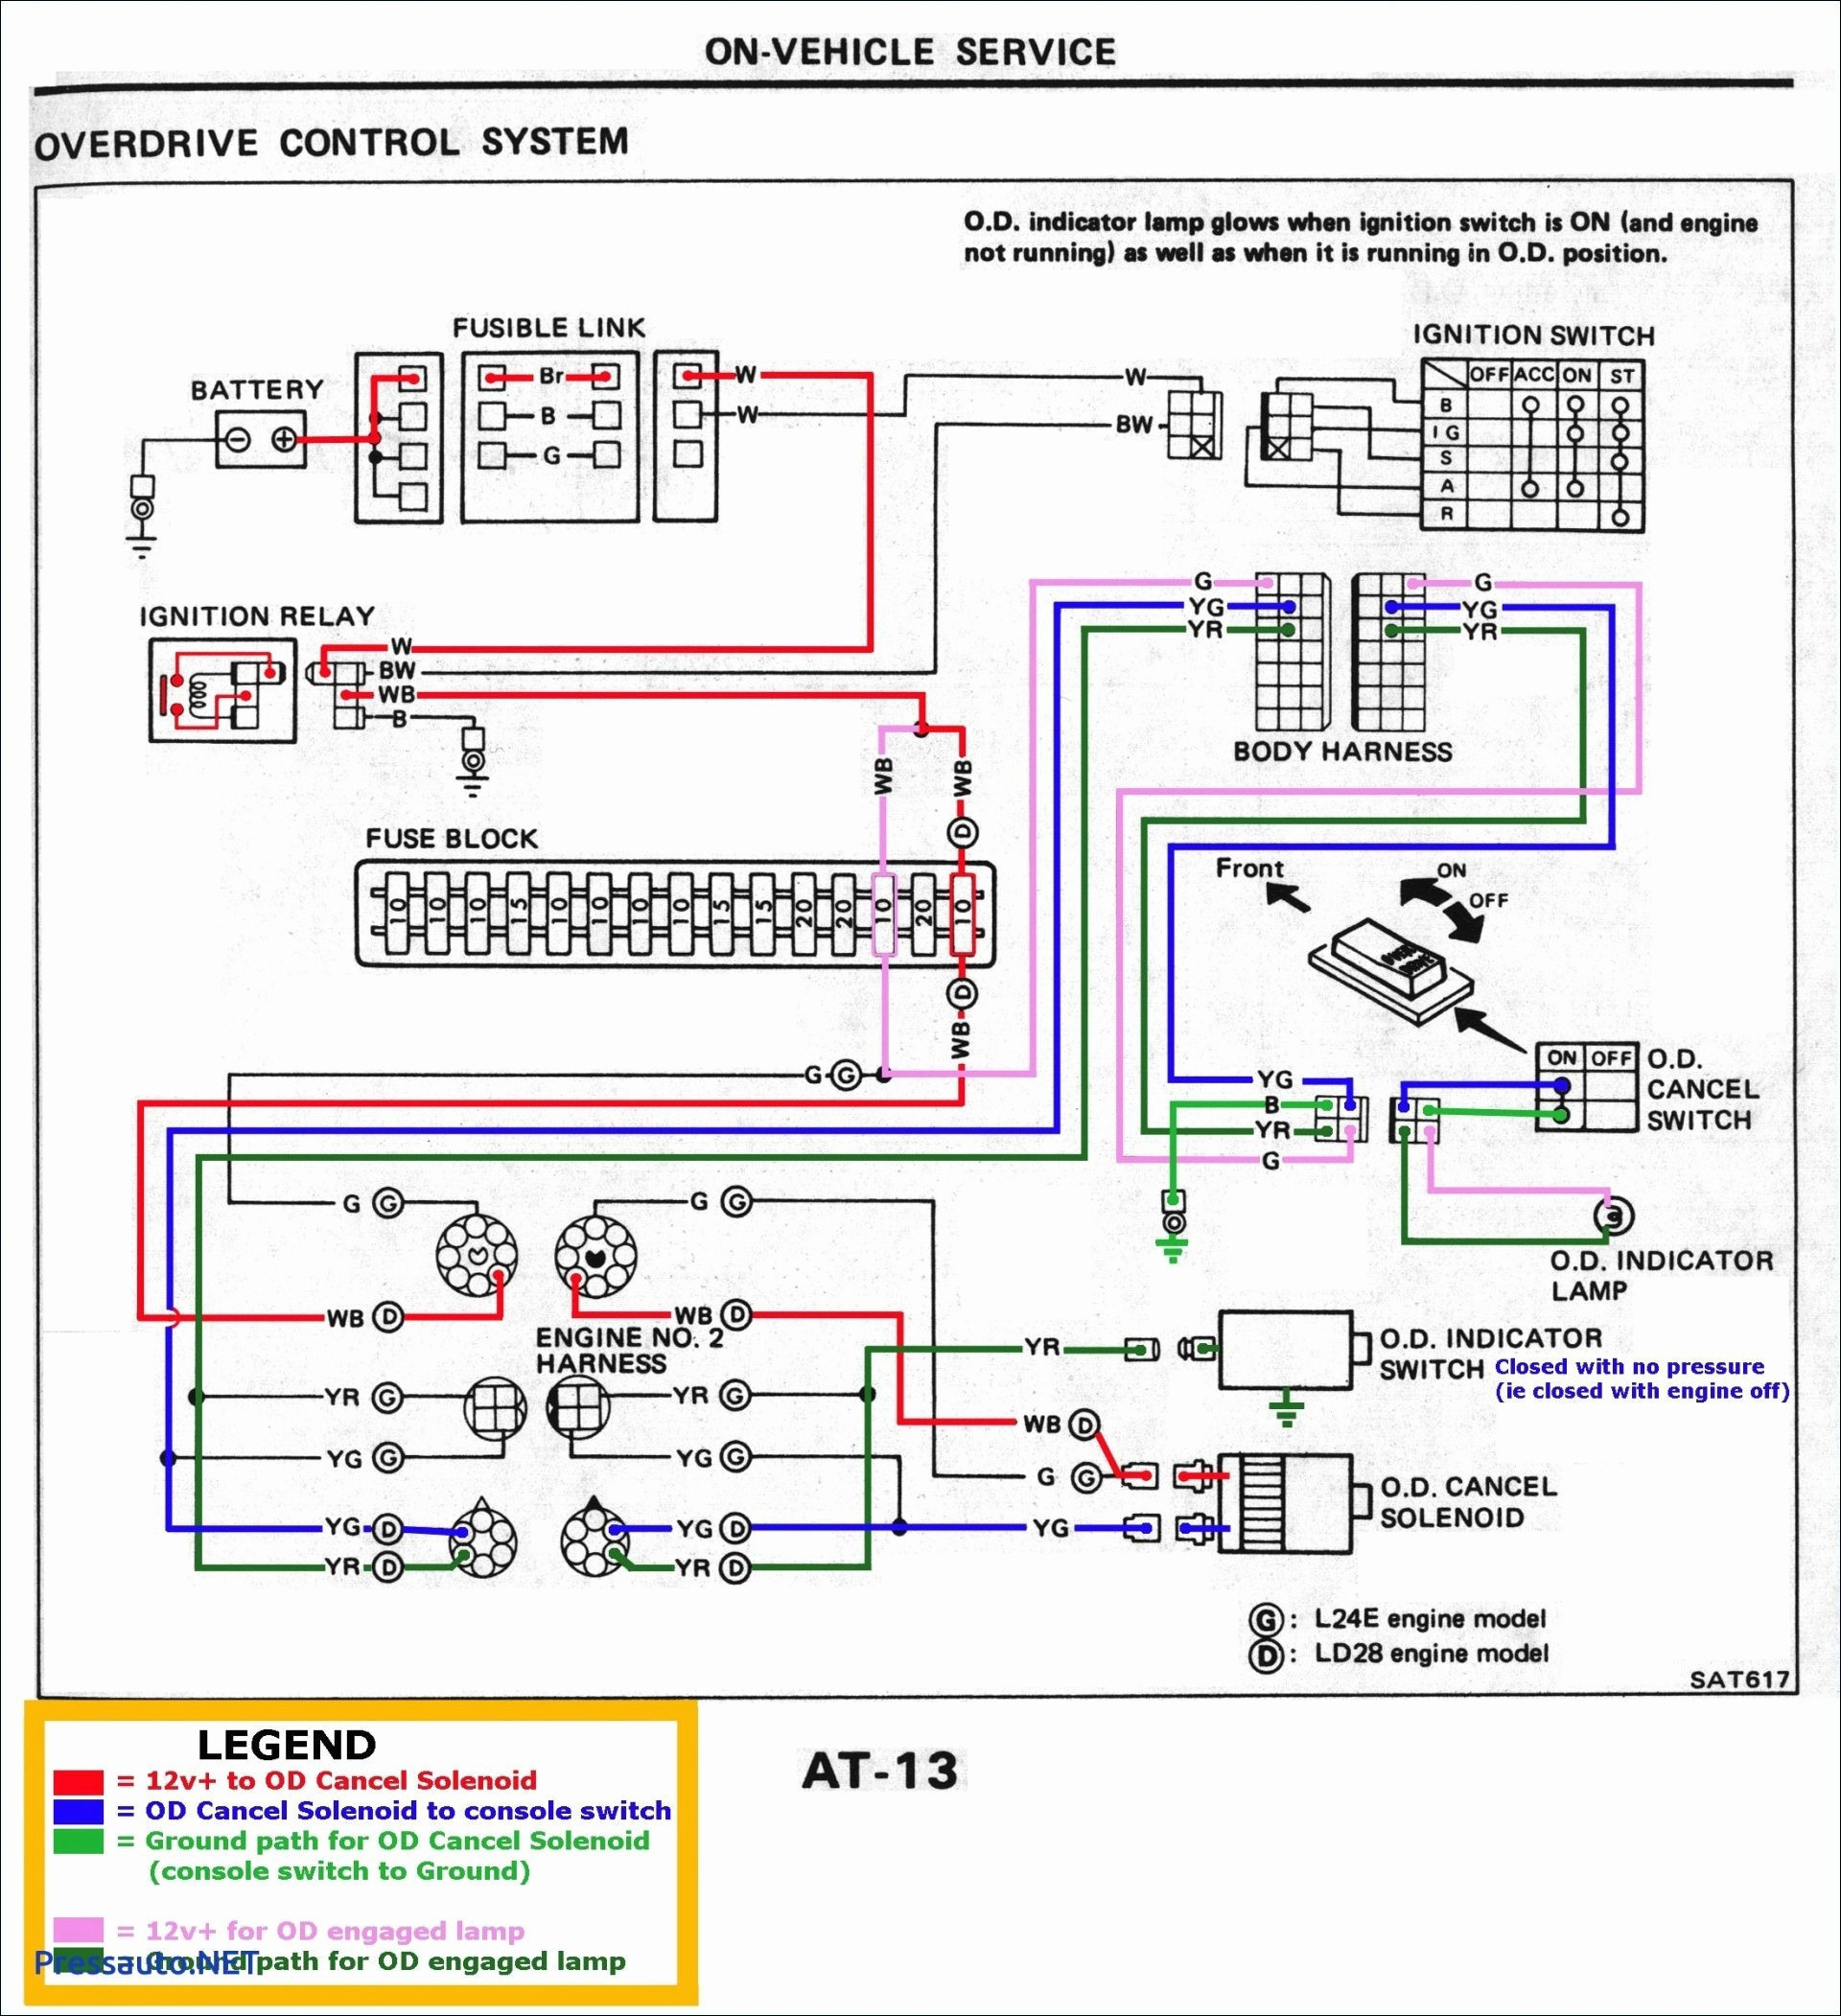 furnas motor starter wiring diagram Download-Motor Relay Wiring Diagram Valid Wiring Diagram for Motor New Wiring Diagram for A Relay to 12-b